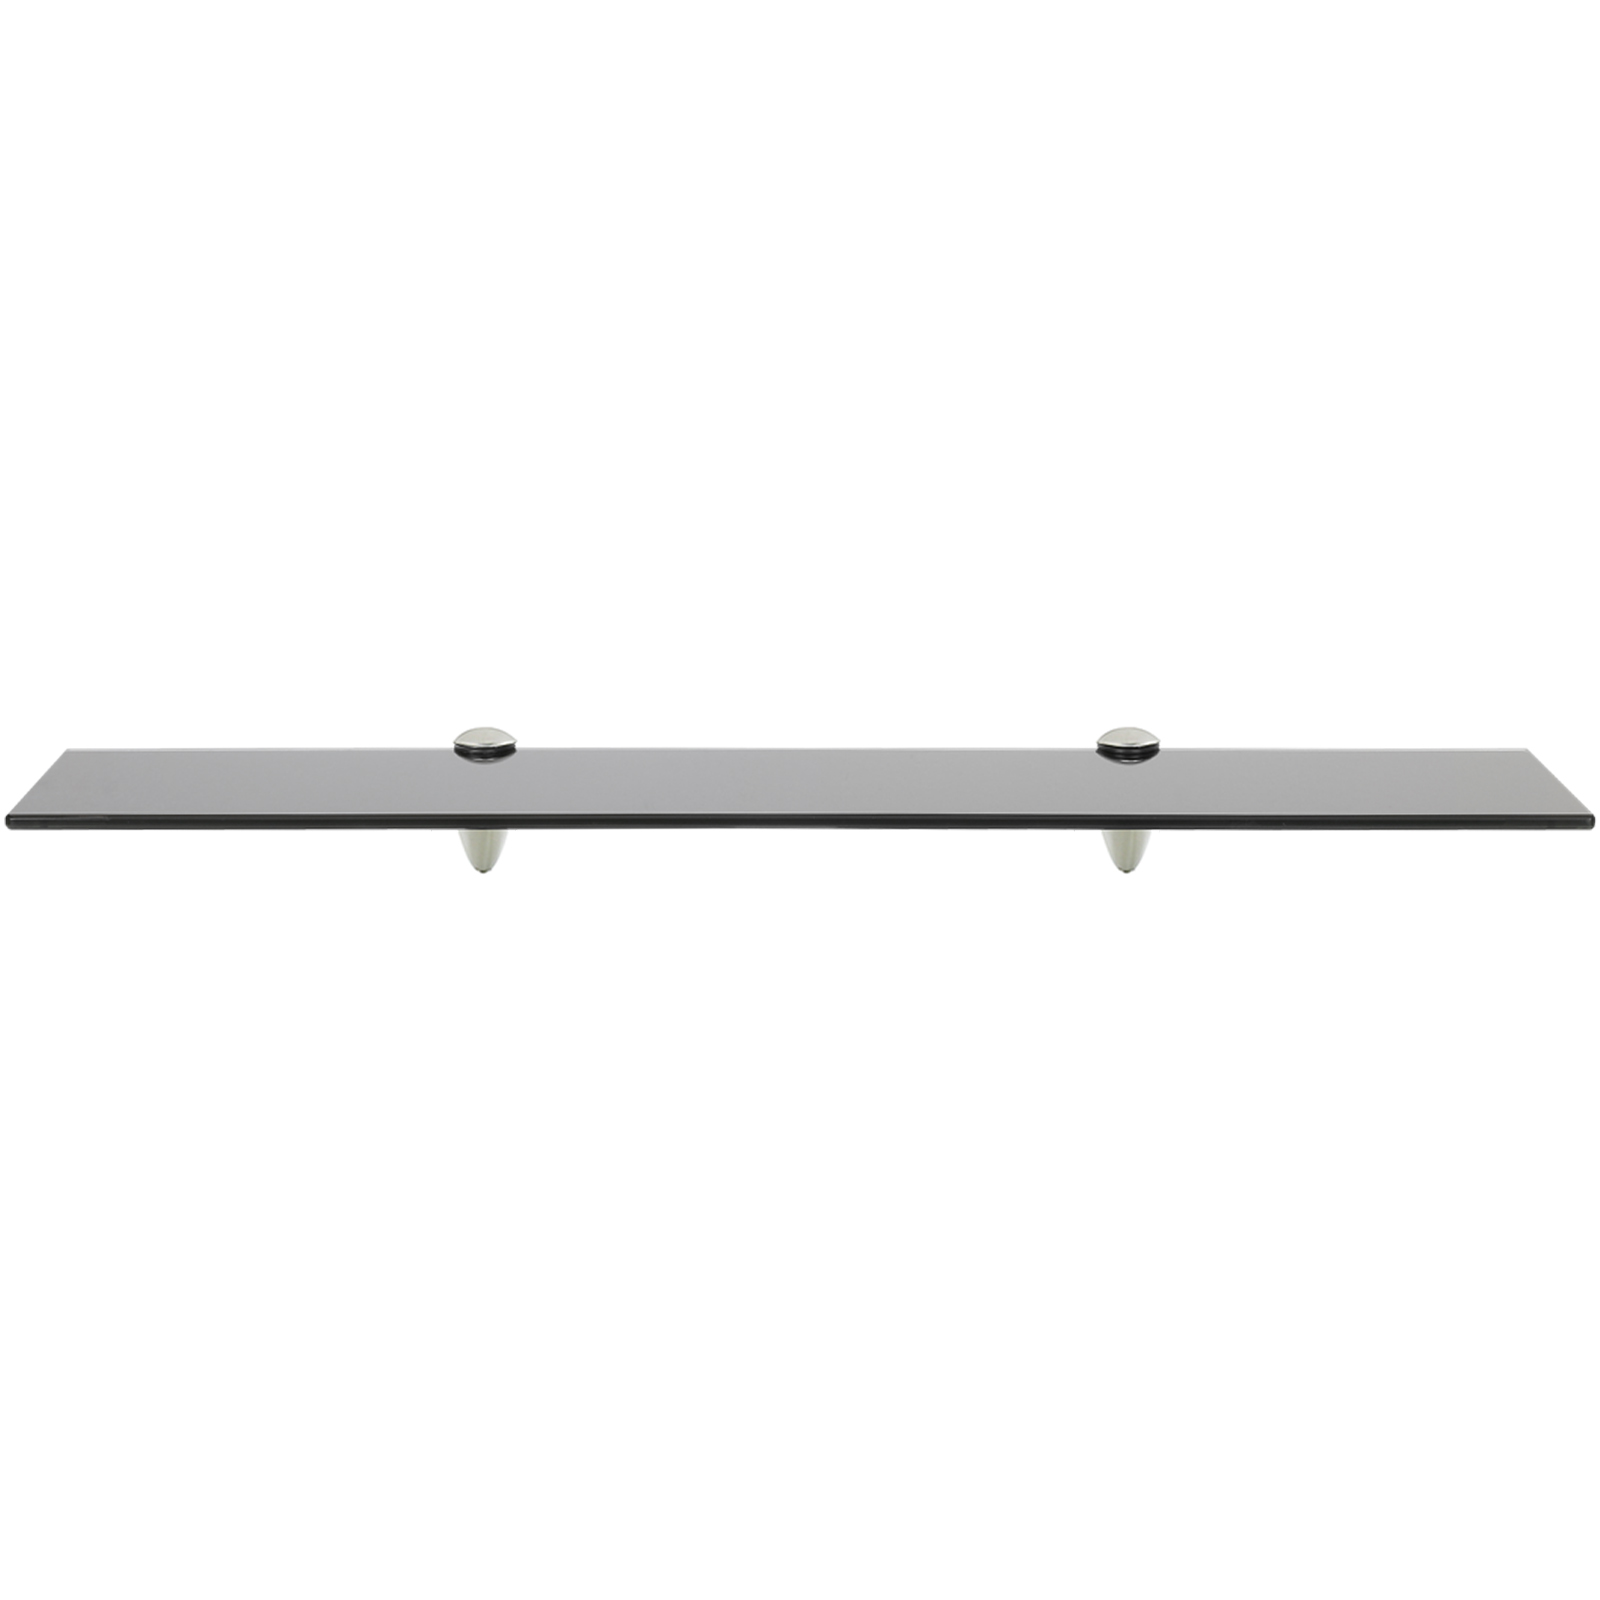 HARTLEYS-BLACK-GLASS-FLOATING-WALL-MOUNTED-SHELF-CHROME-FIXINGS-BATHROOM-DISPLAY thumbnail 10